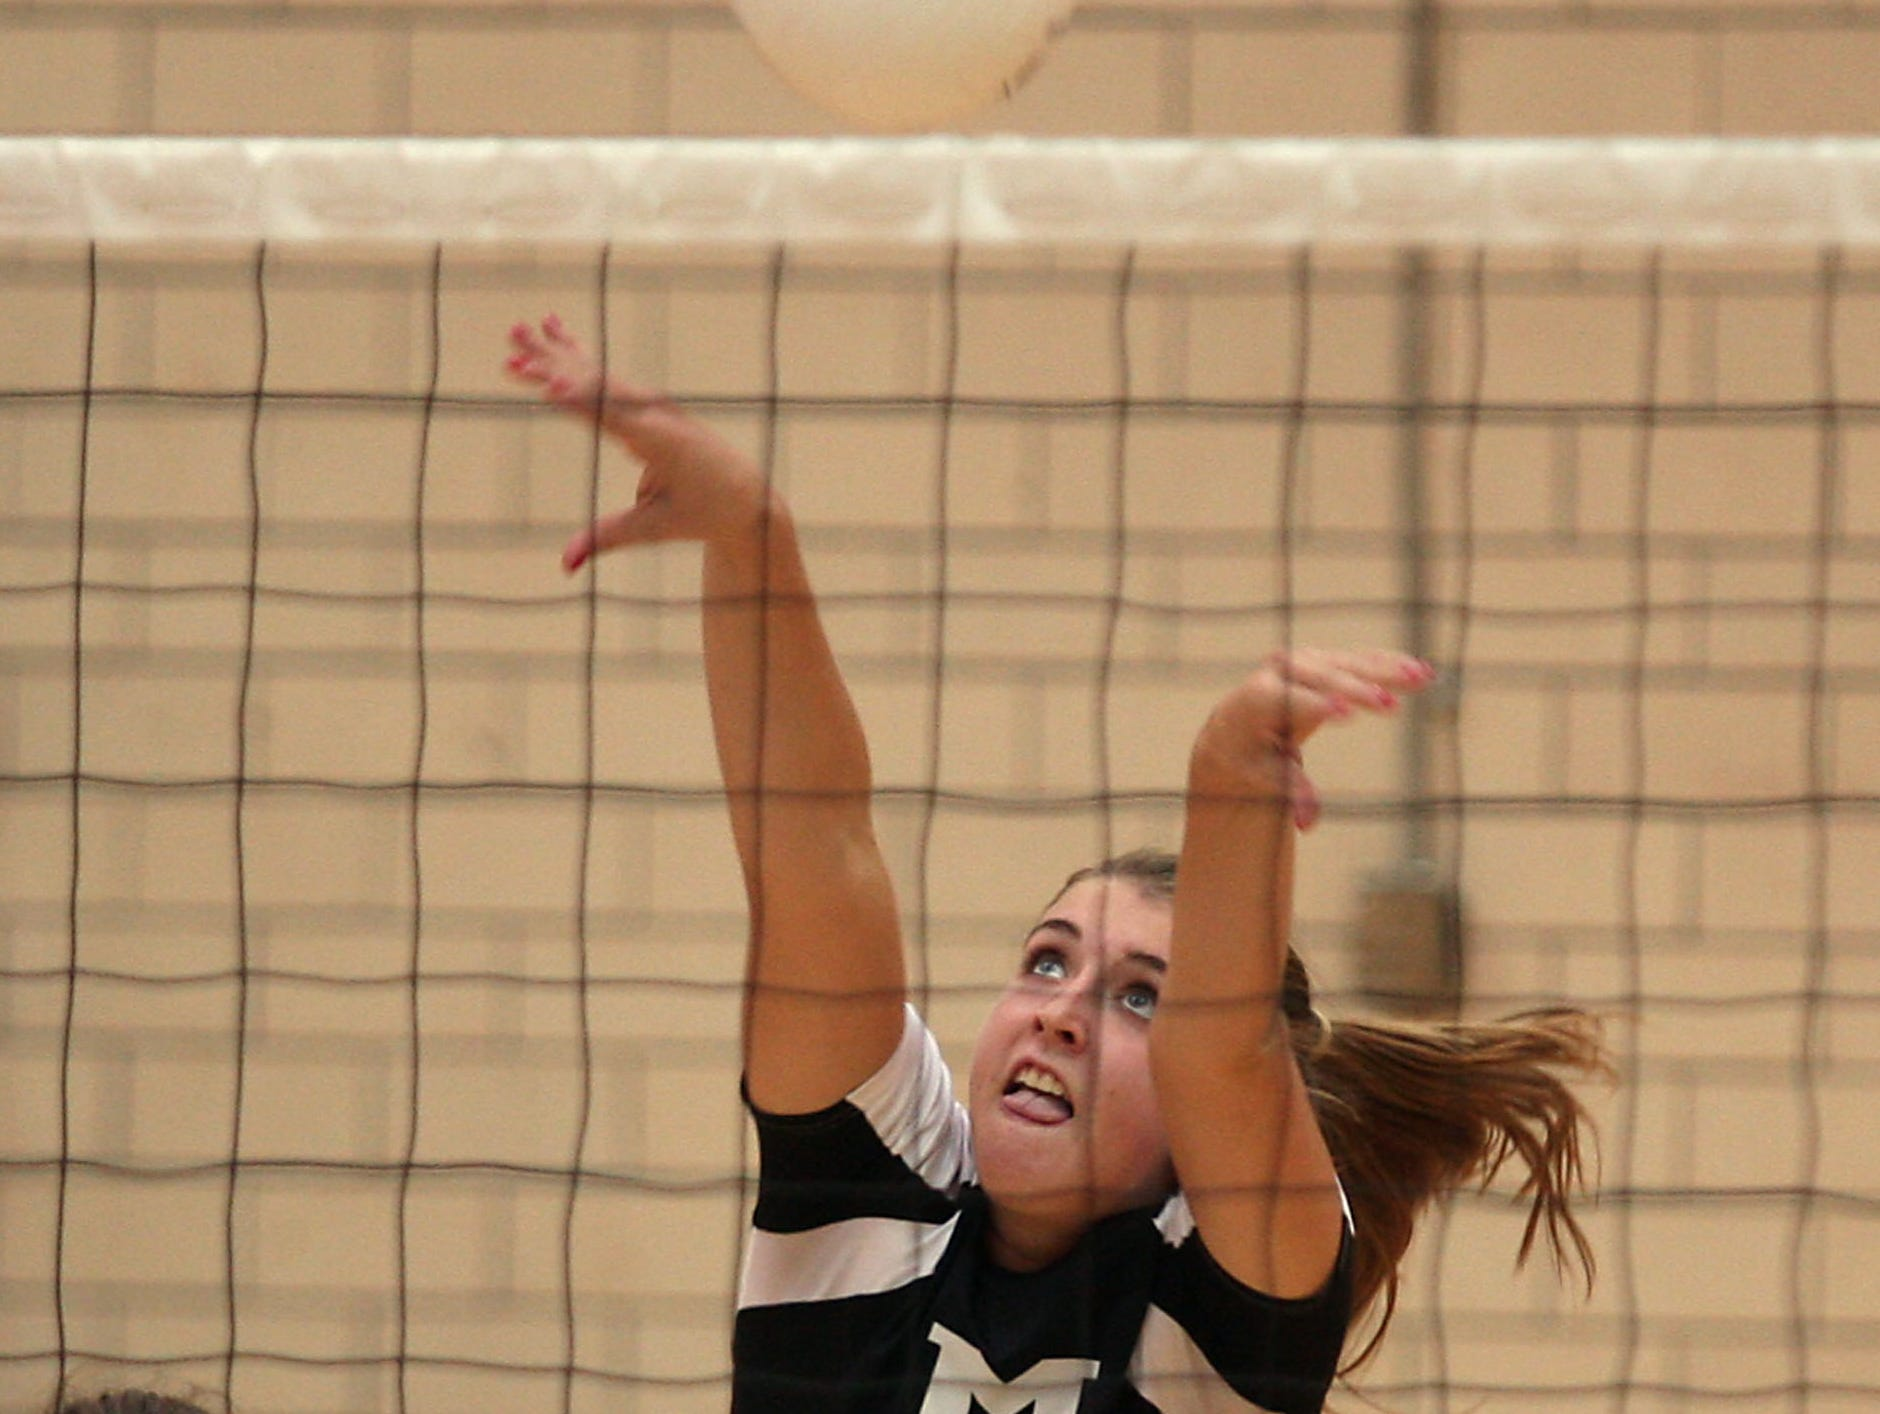 Morristown's Abby Schubiger puts the ball over the net in this file photo.